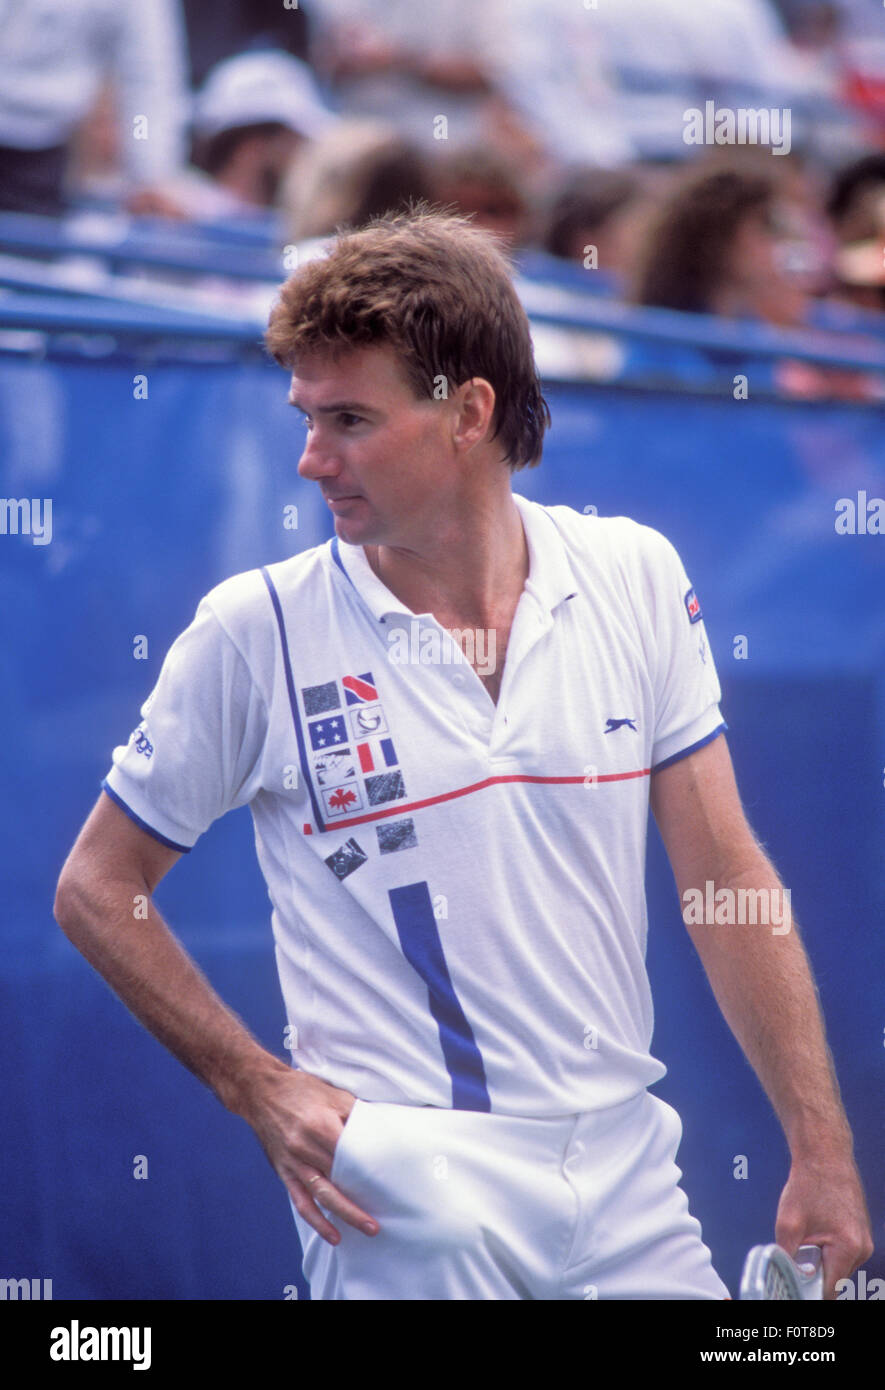 Jimmy Connors in action at the U S Open tennis tournament at